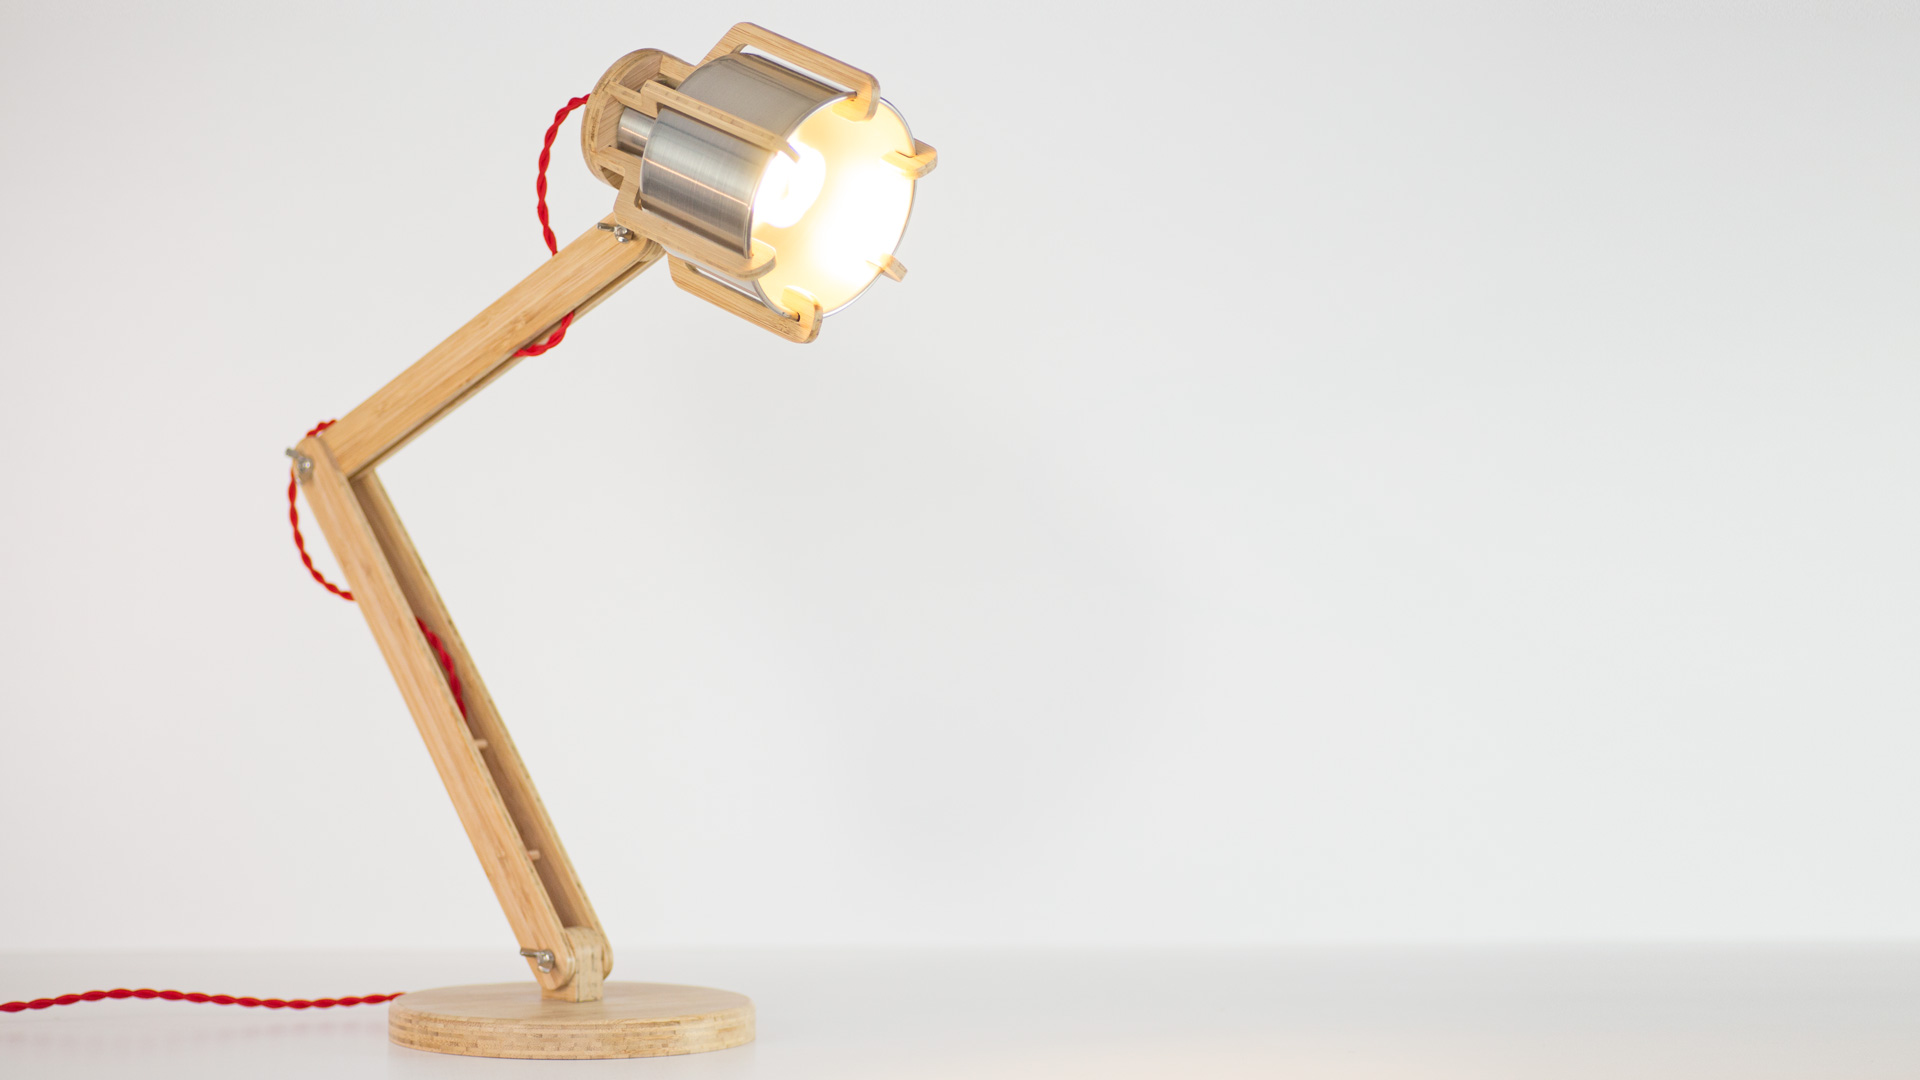 These Cool Desk Lamps Are Handmade To Order In Natural Or Dark Bamboo With The Metal Shade Available A Number Of Finishes